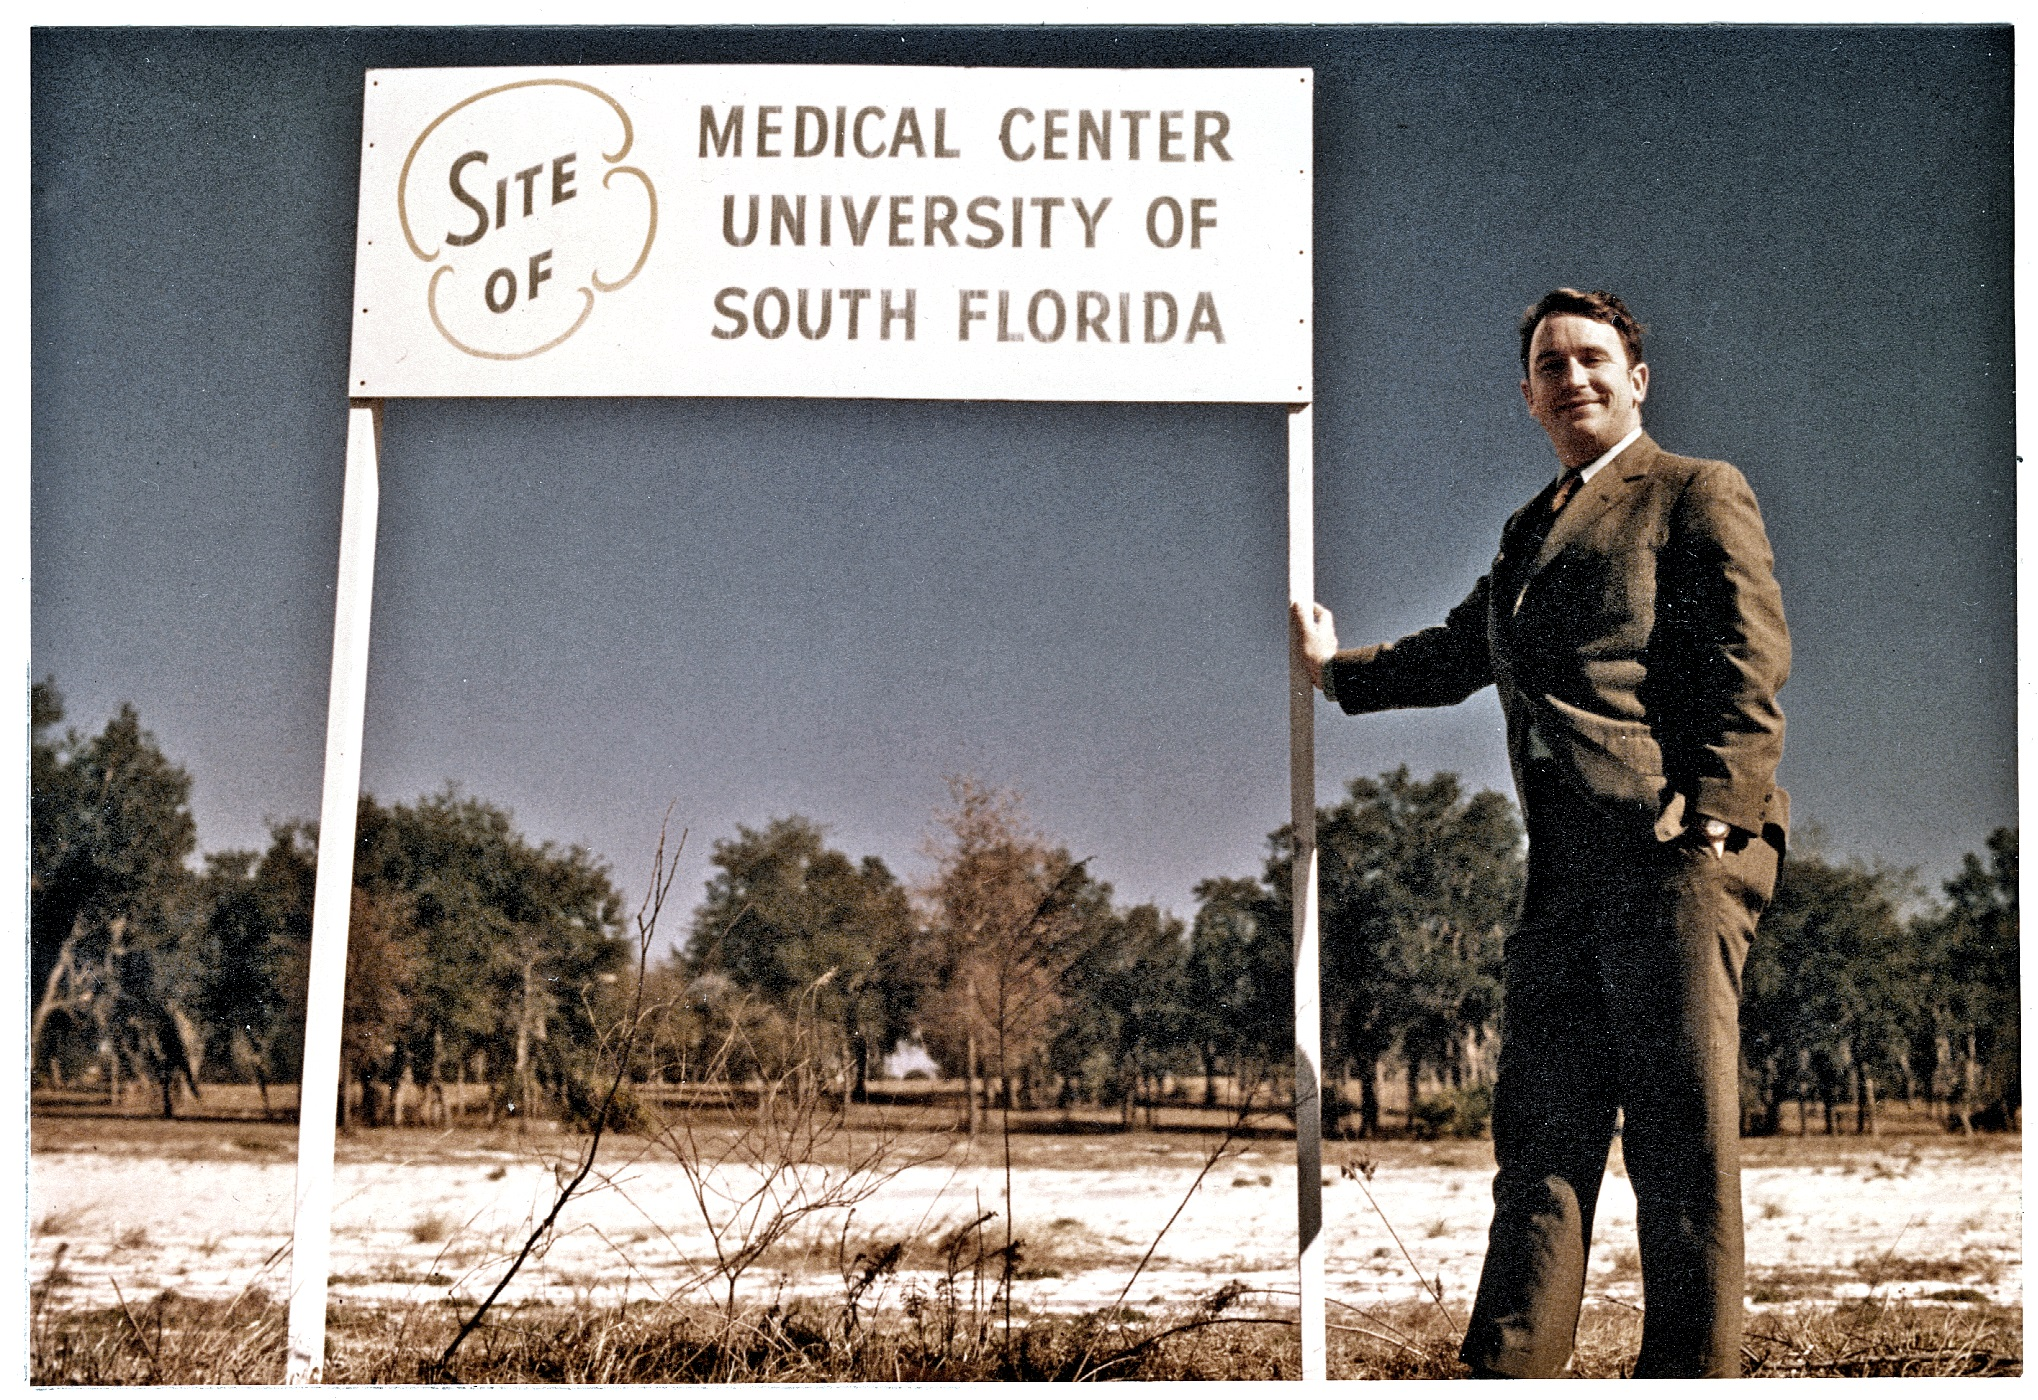 Walter Afield, MD Groundbreaking of USF Medical School - 1970